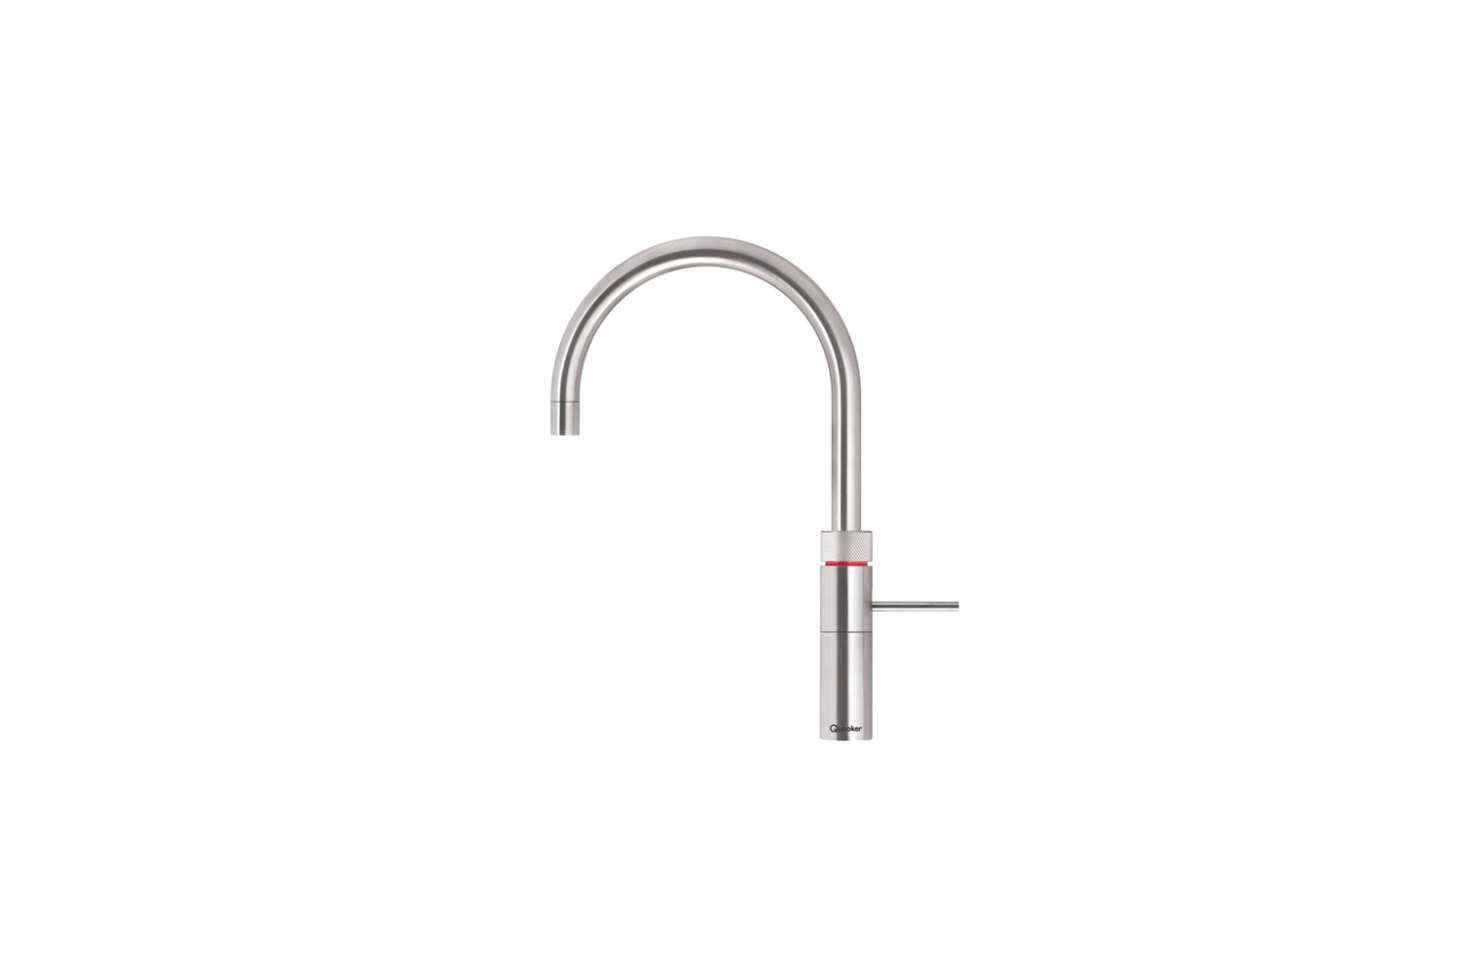 The Quooker Fusion Round Mixer Tap is a combination boiling water and mixer tap. Contact Quooker for ordering information. For more, see our post Remodeling src=